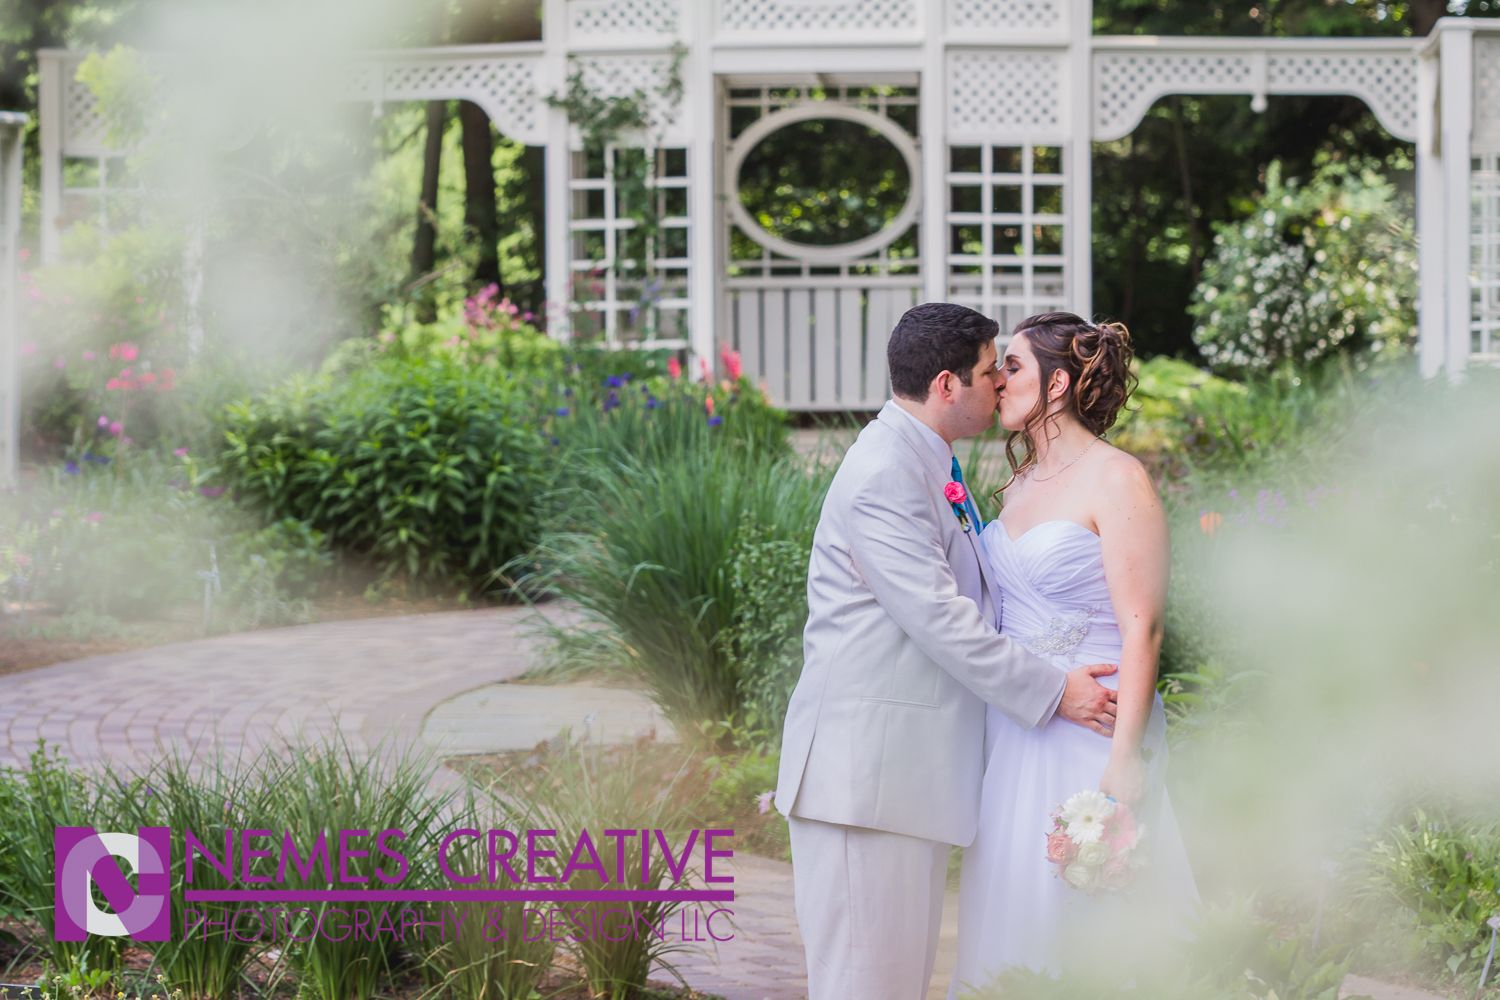 outdoor wedding ceremony sites in akron ohio%0A Alyssa  u     Ryan Granitto share a sweet moment after their wedding ceremony in  the rose garden